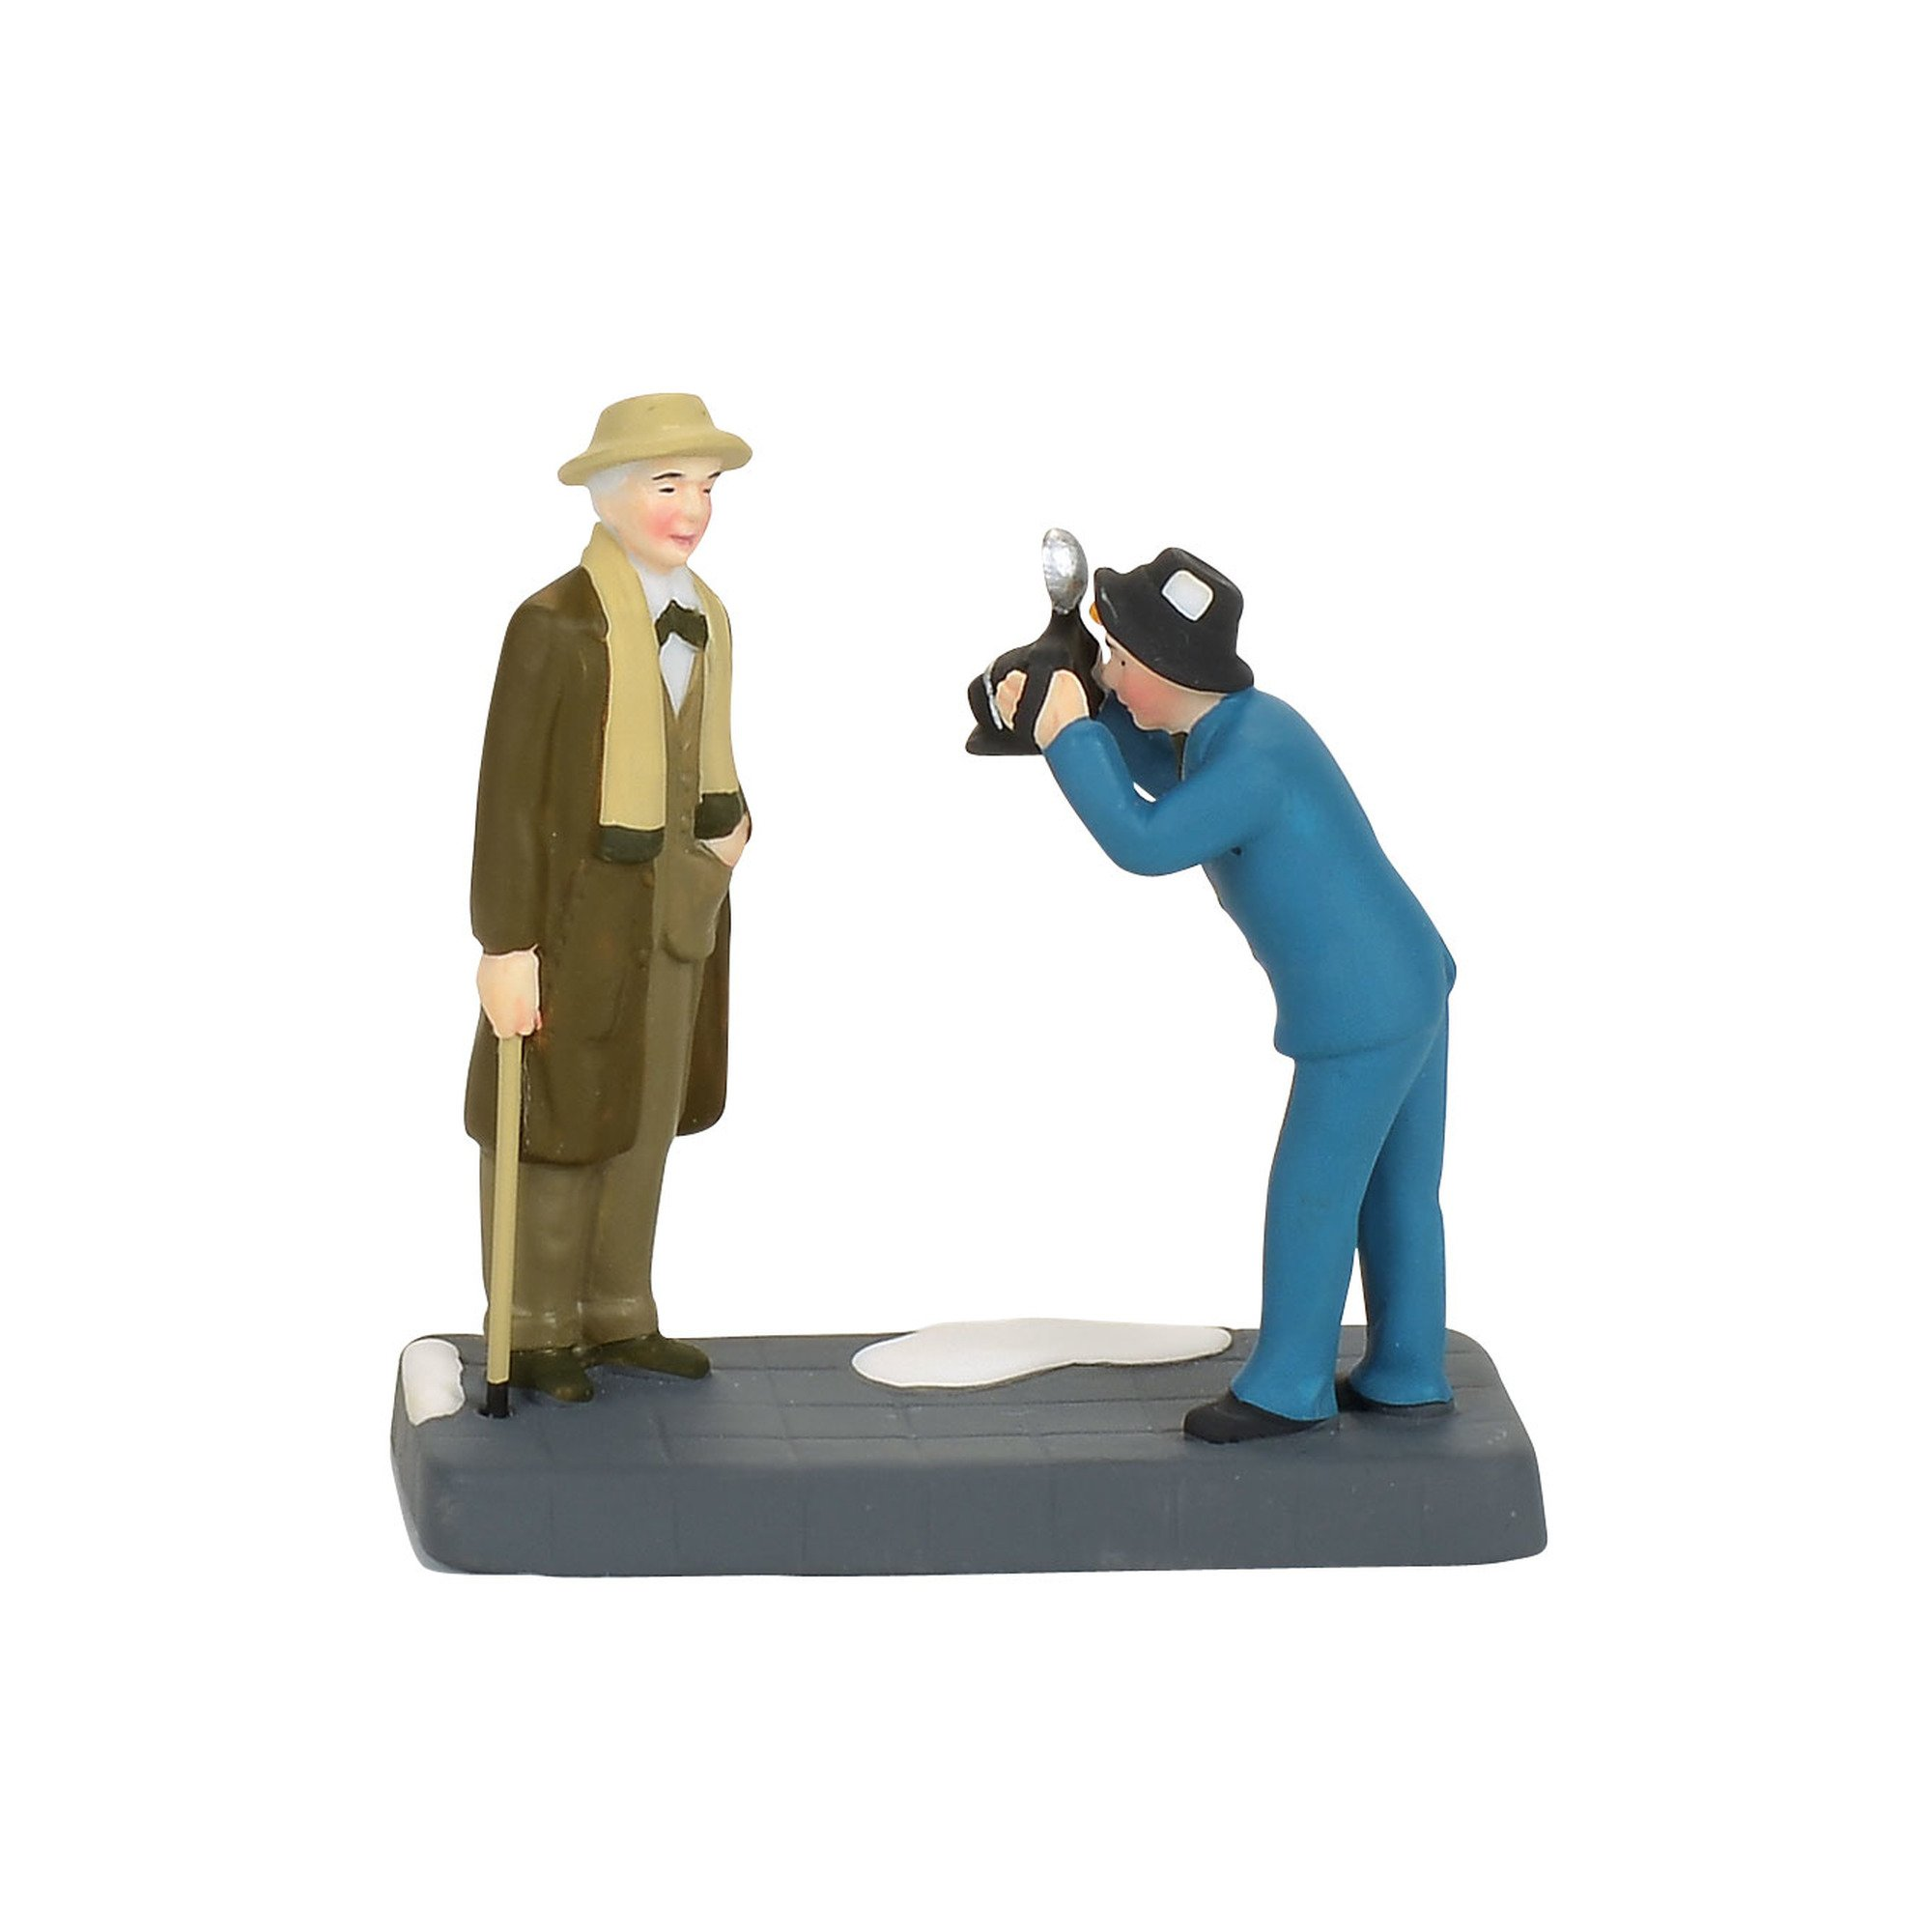 Department 56 Christmas in The City Frank Lloyd Wright Newspaper Photo Figurine Village Accessory, Multicolor